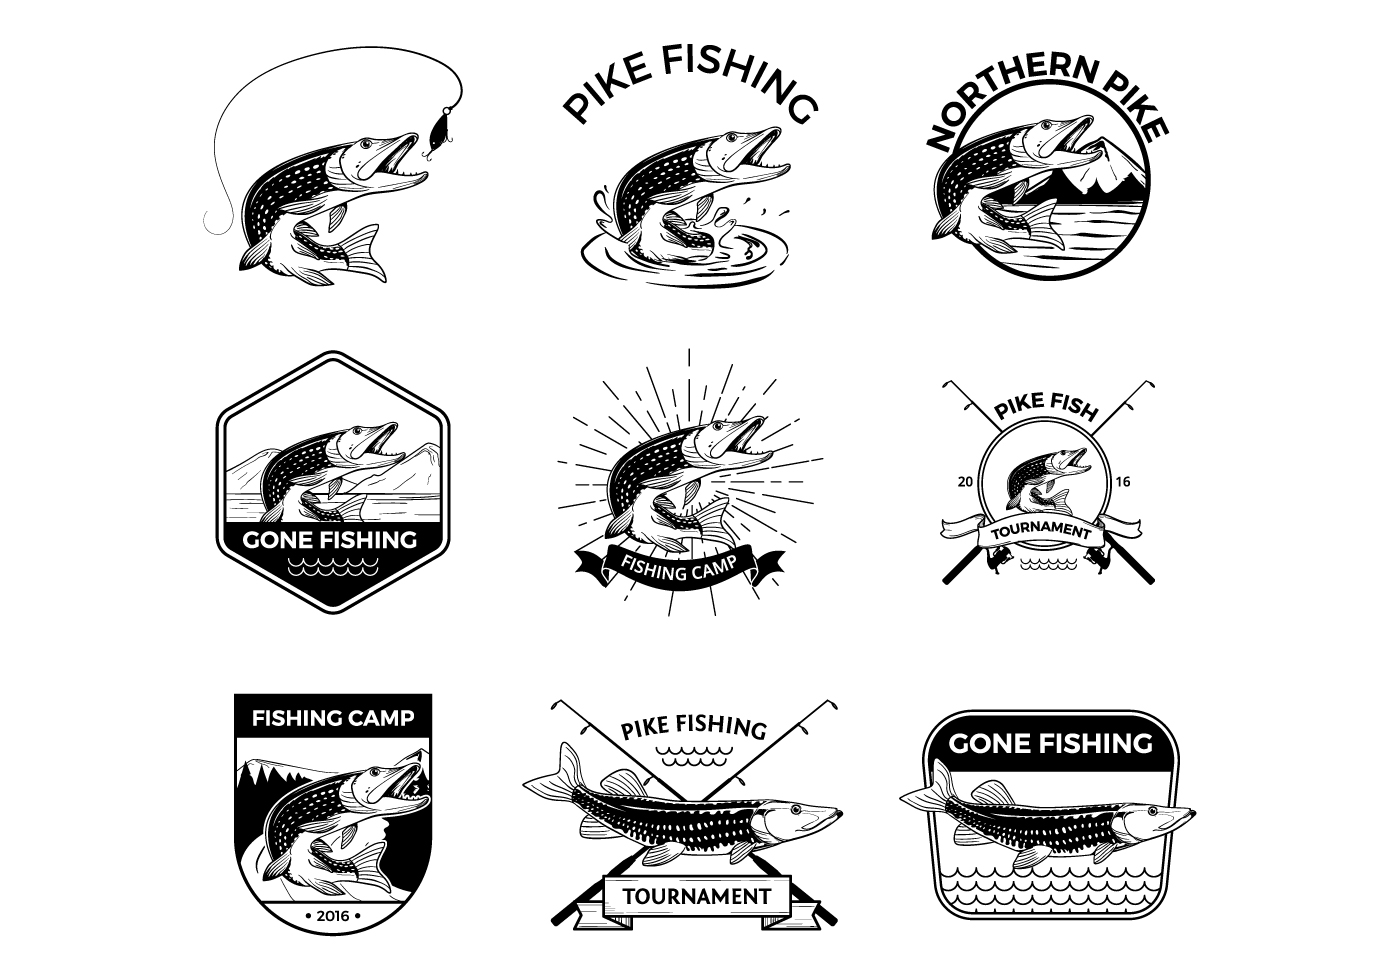 Free Pike Fishing Vectors Download Free Vectors Clipart